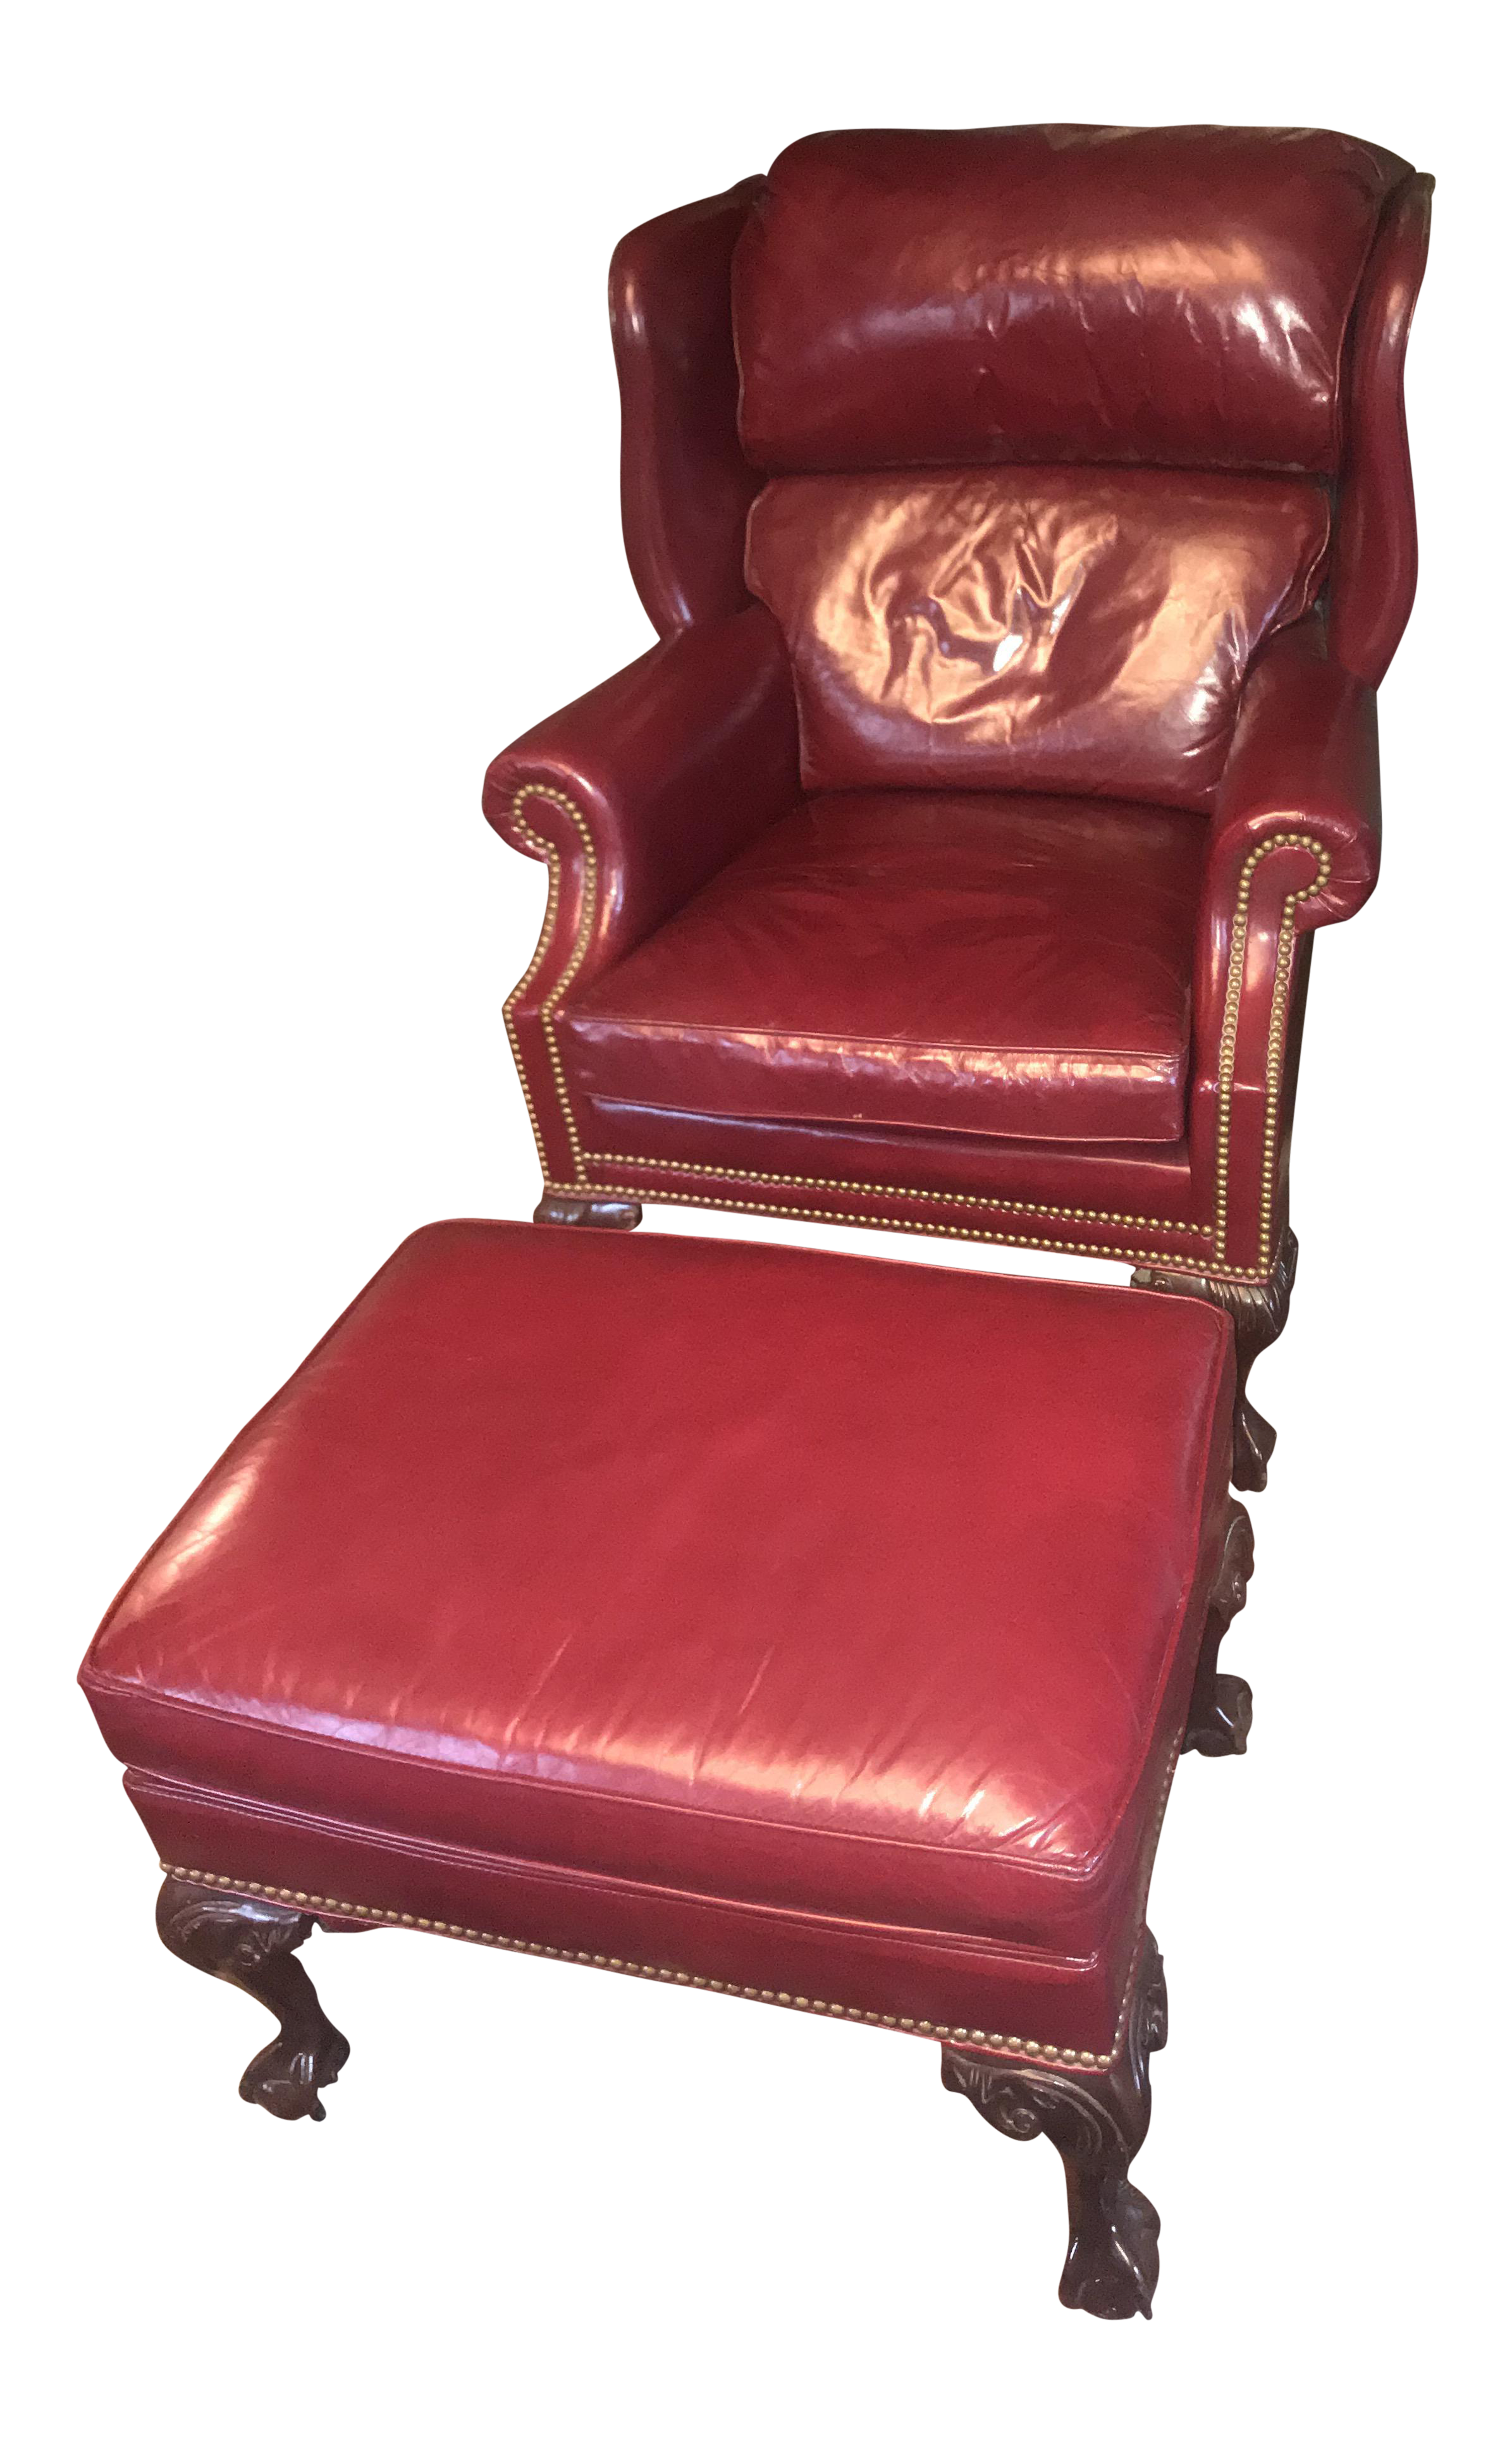 Red Leather Wing Back Chair and Ottoman Chair and